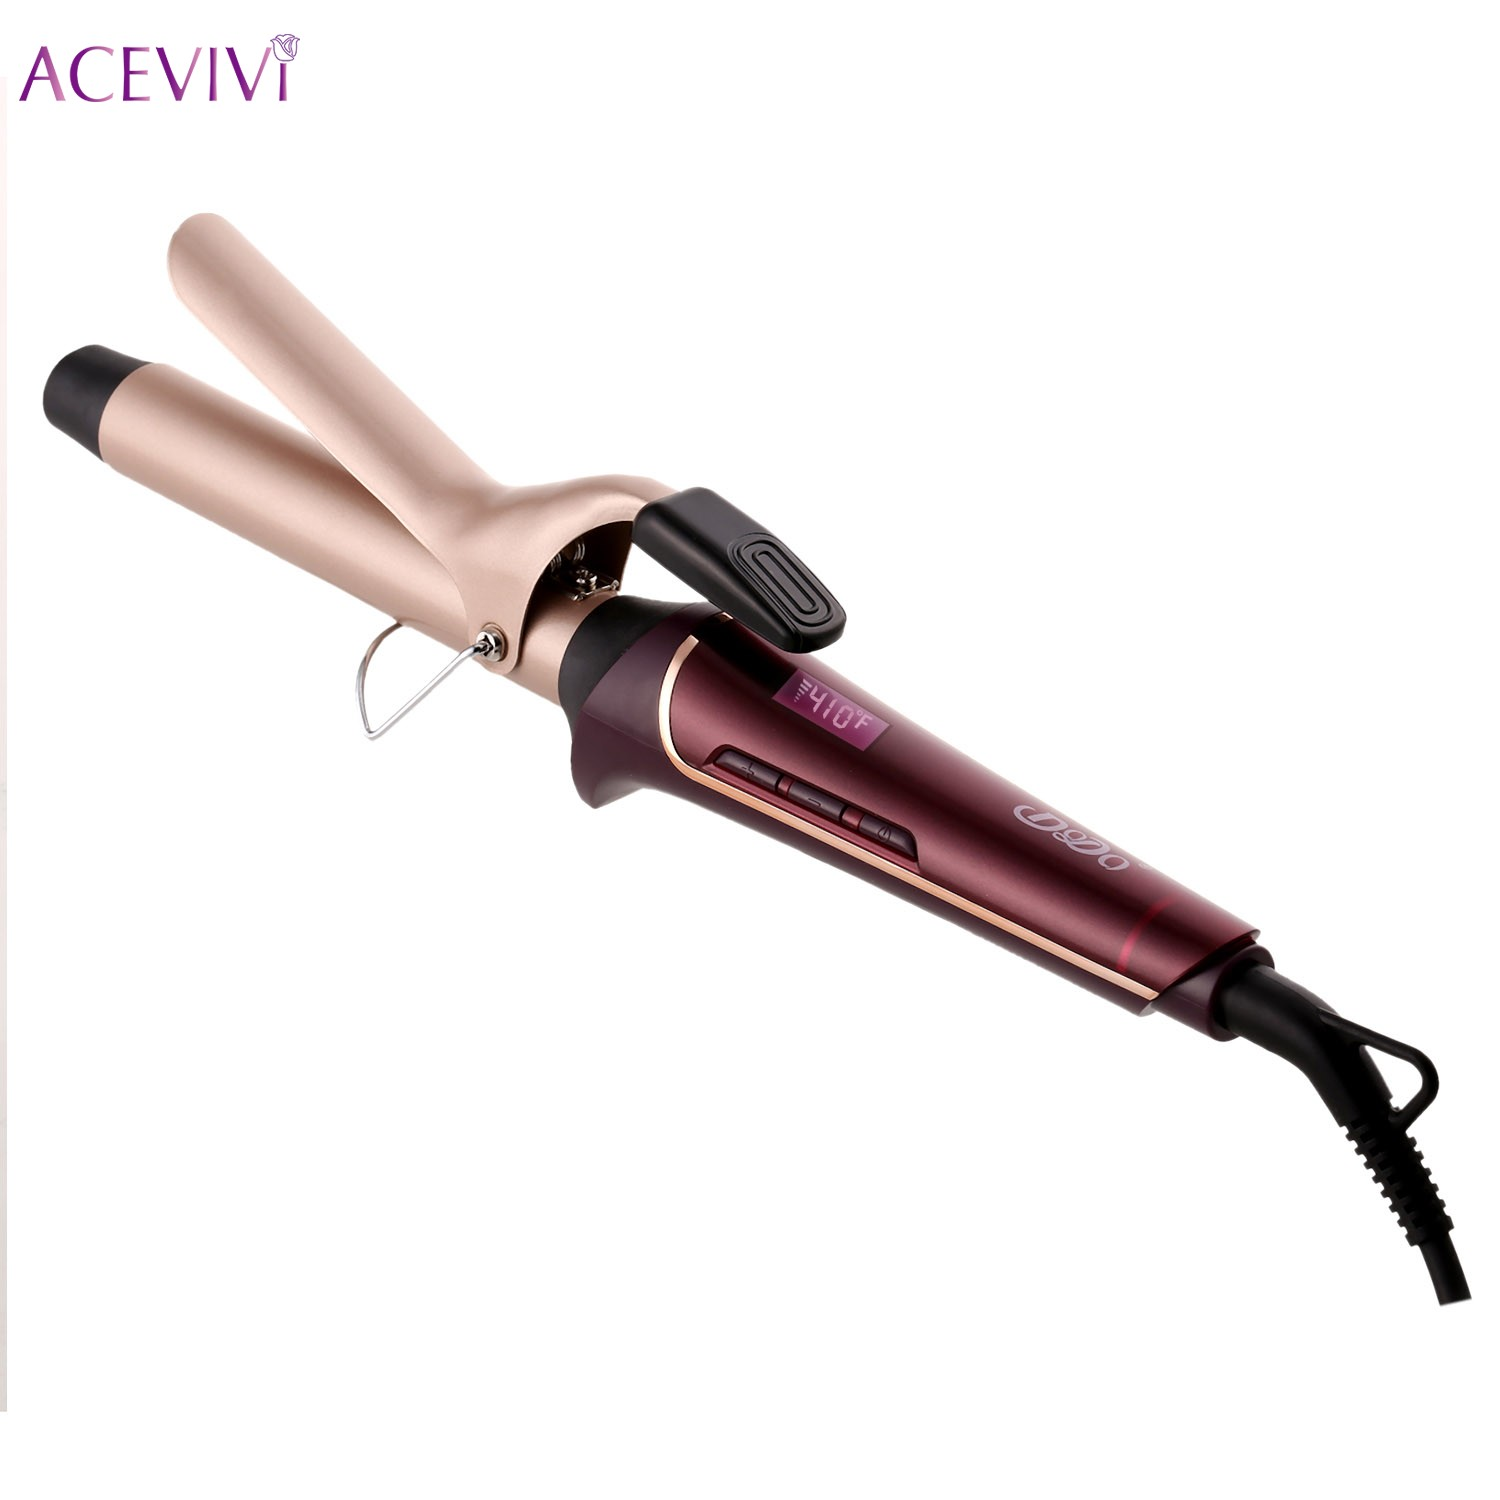 ACEVIVI LCD Temperature Display Hair Salon Curler Waver Styling Tools Professional Curling Iron Hair Styler Wand EU UK US Plug queenme steam spray hair curler styler heating hair styling tools automatic hair curling iron curl wand eu us au uk plug